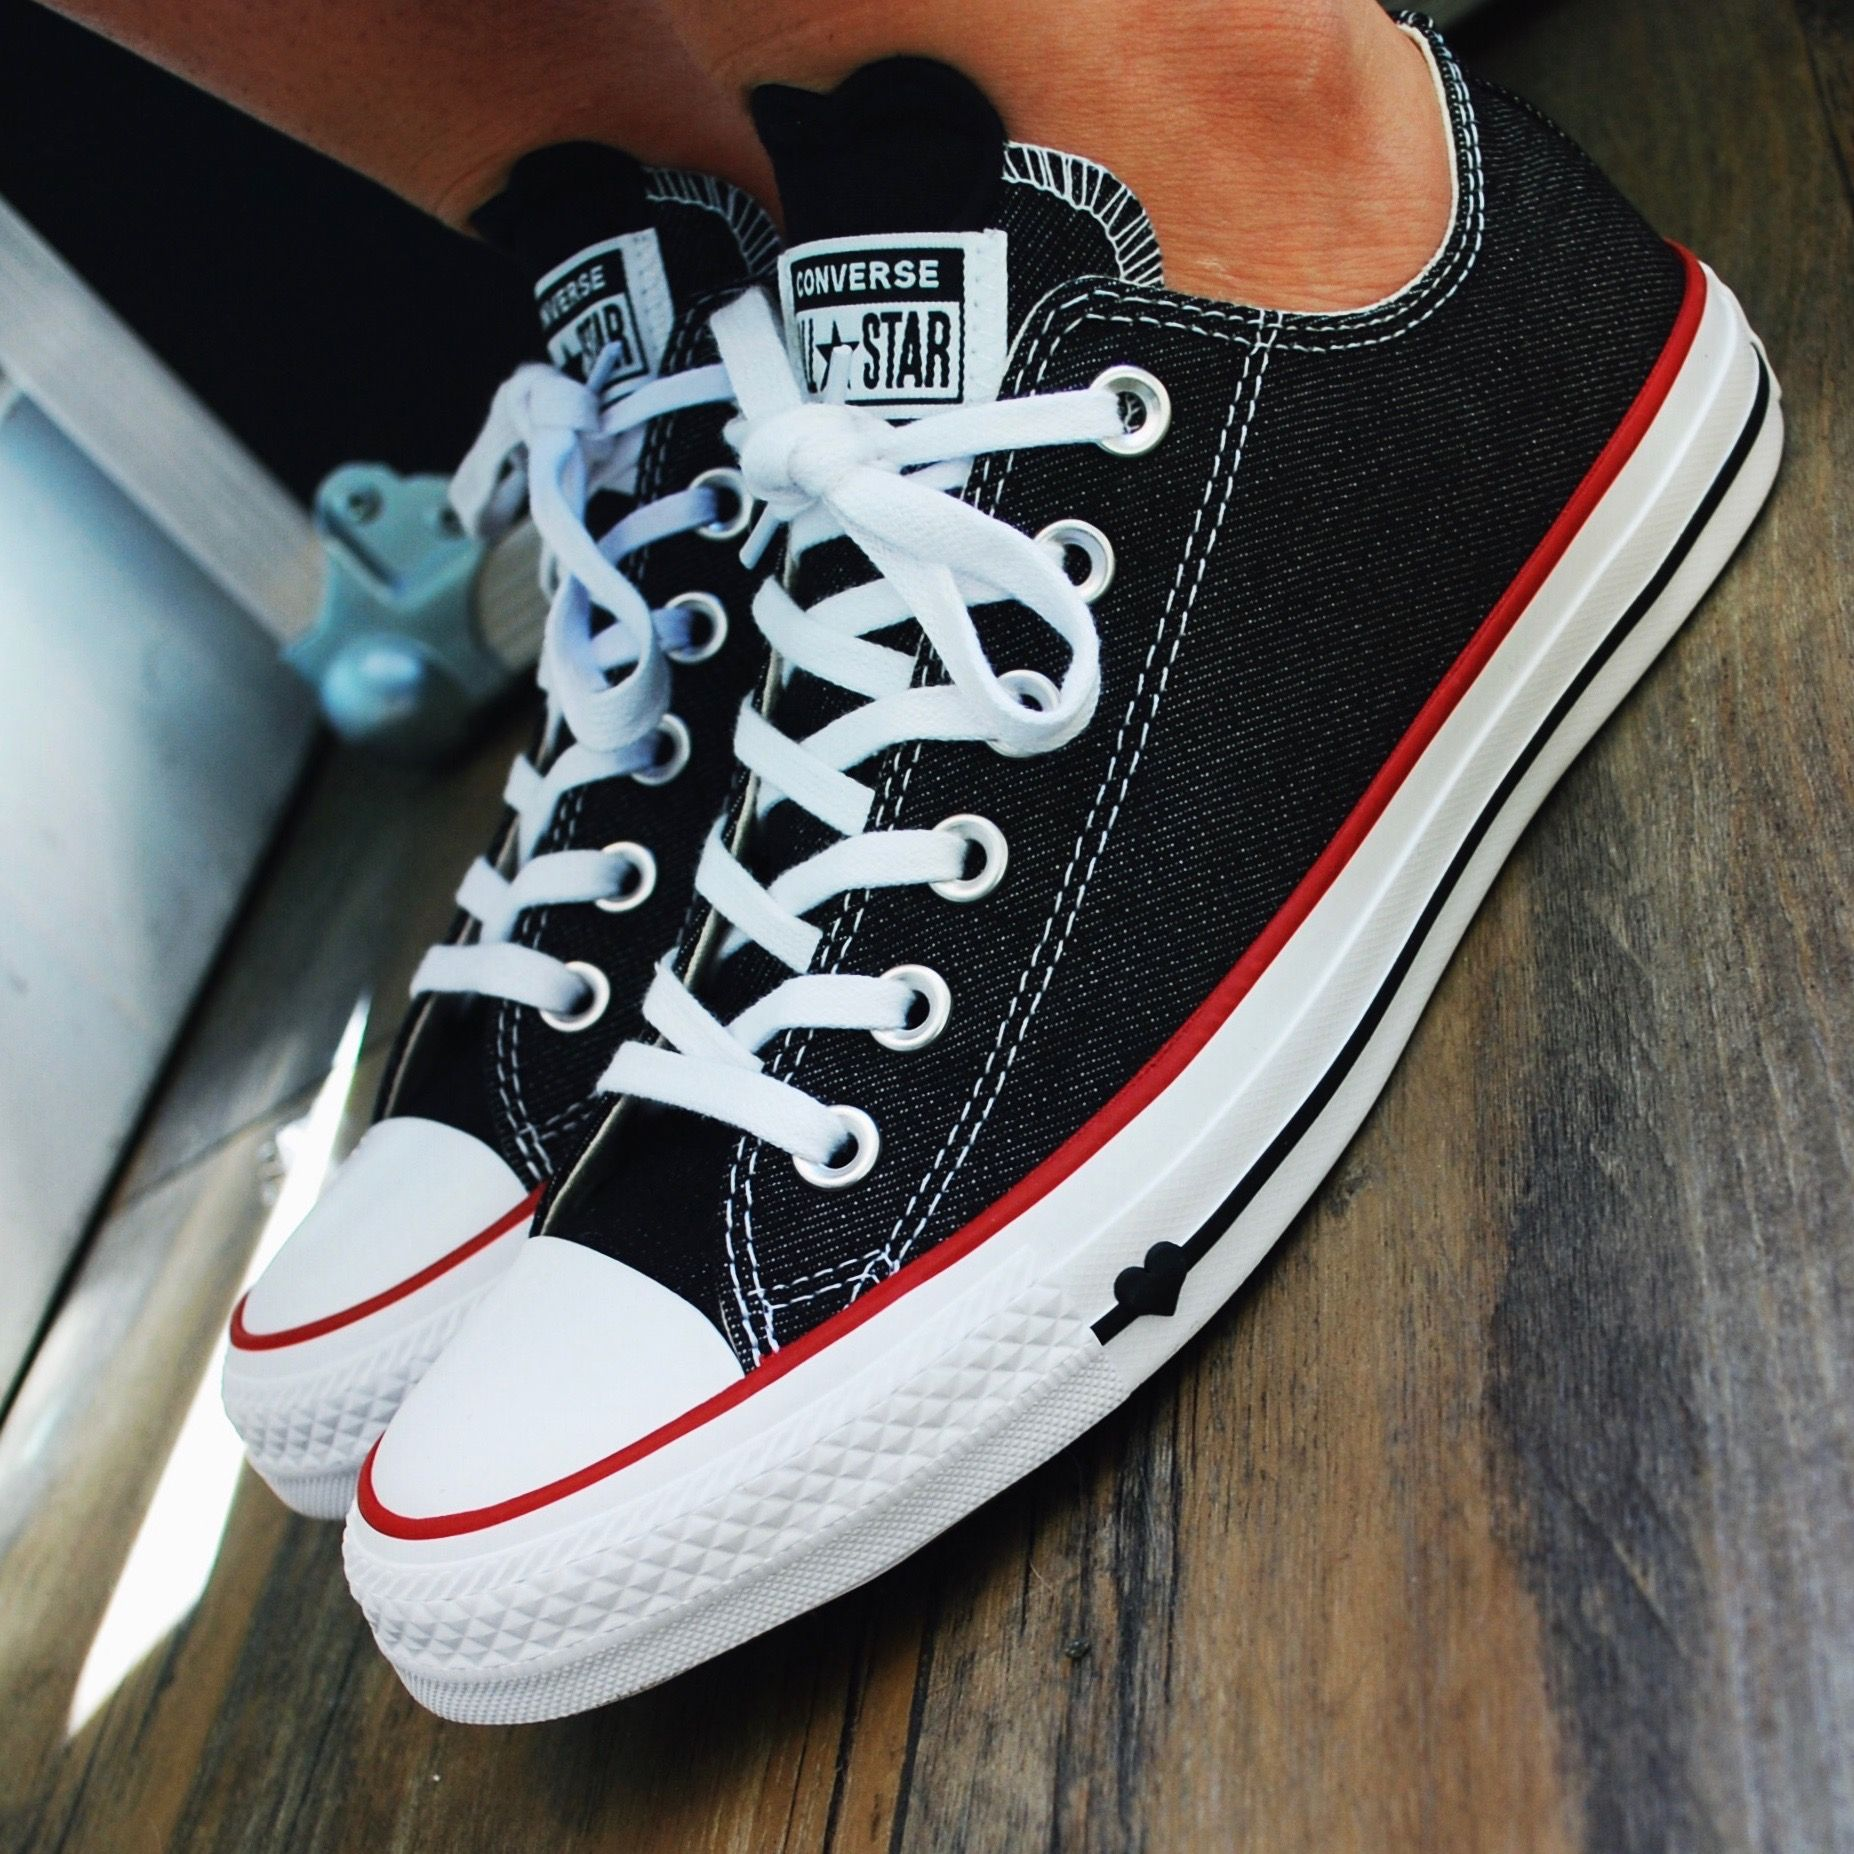 The Converse Chuck Taylor All Star Low